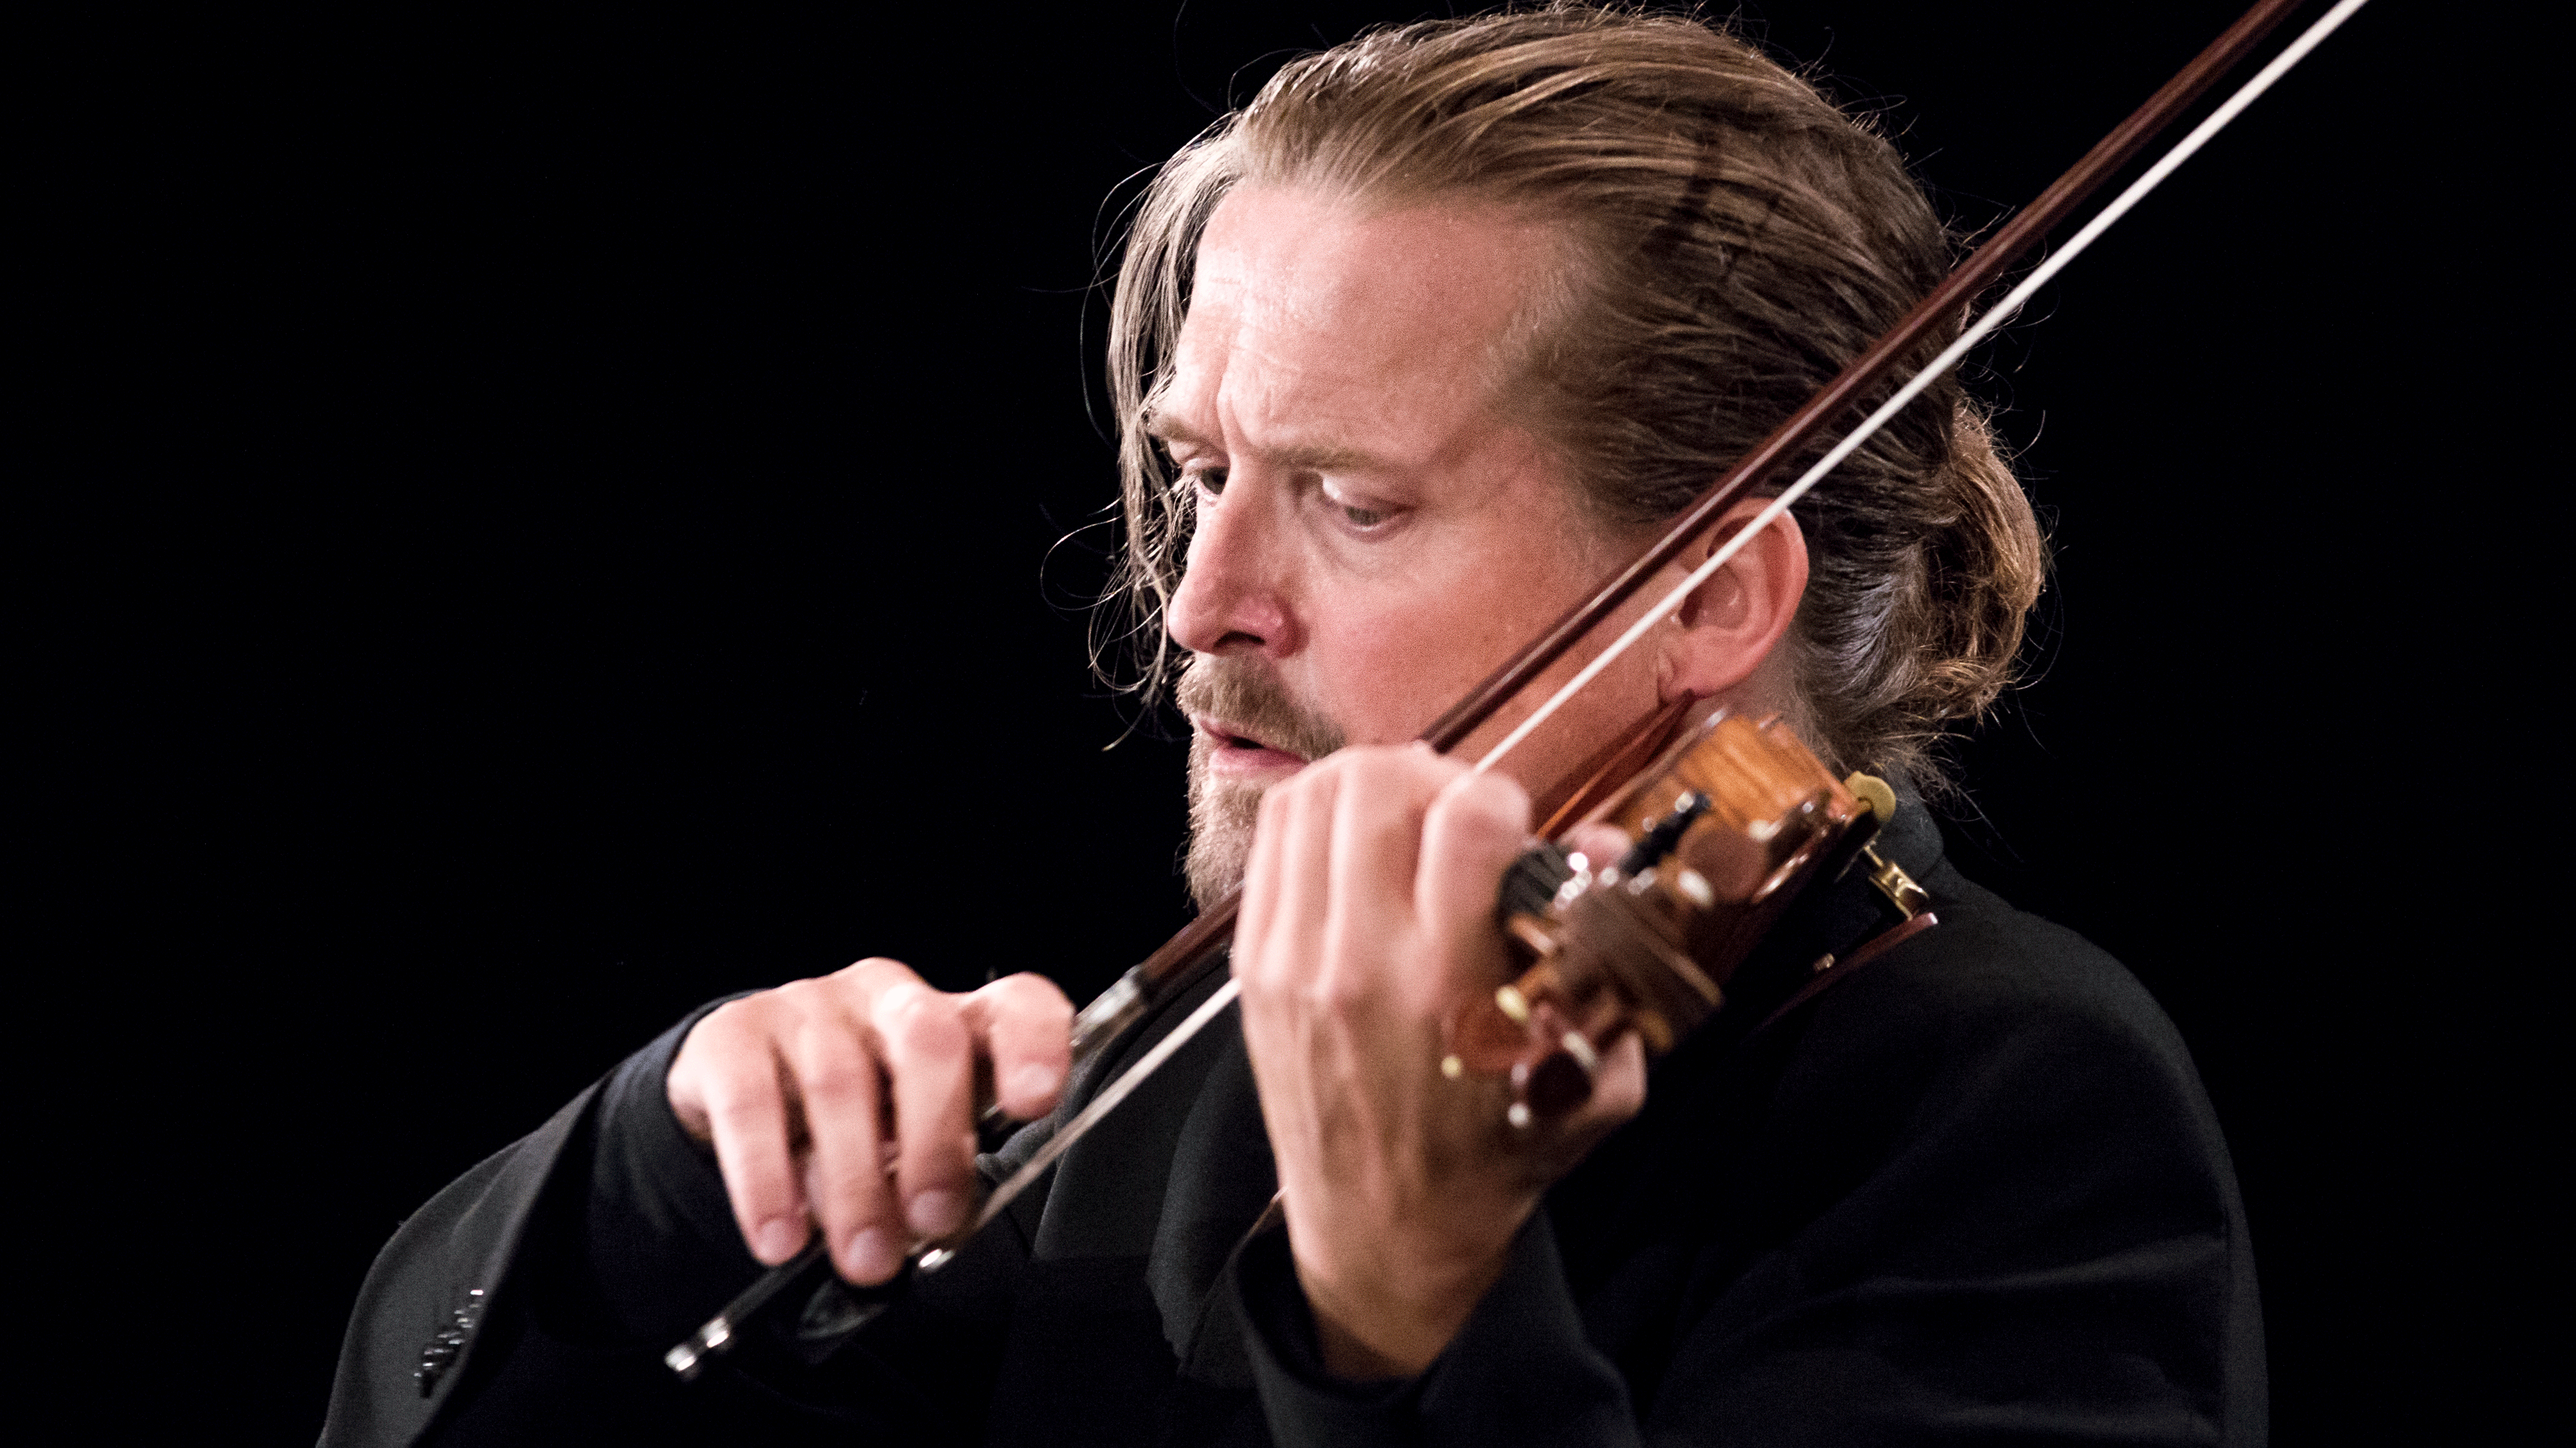 Christian Tetzlaff performs Ysaÿe, Bach, and Bartók